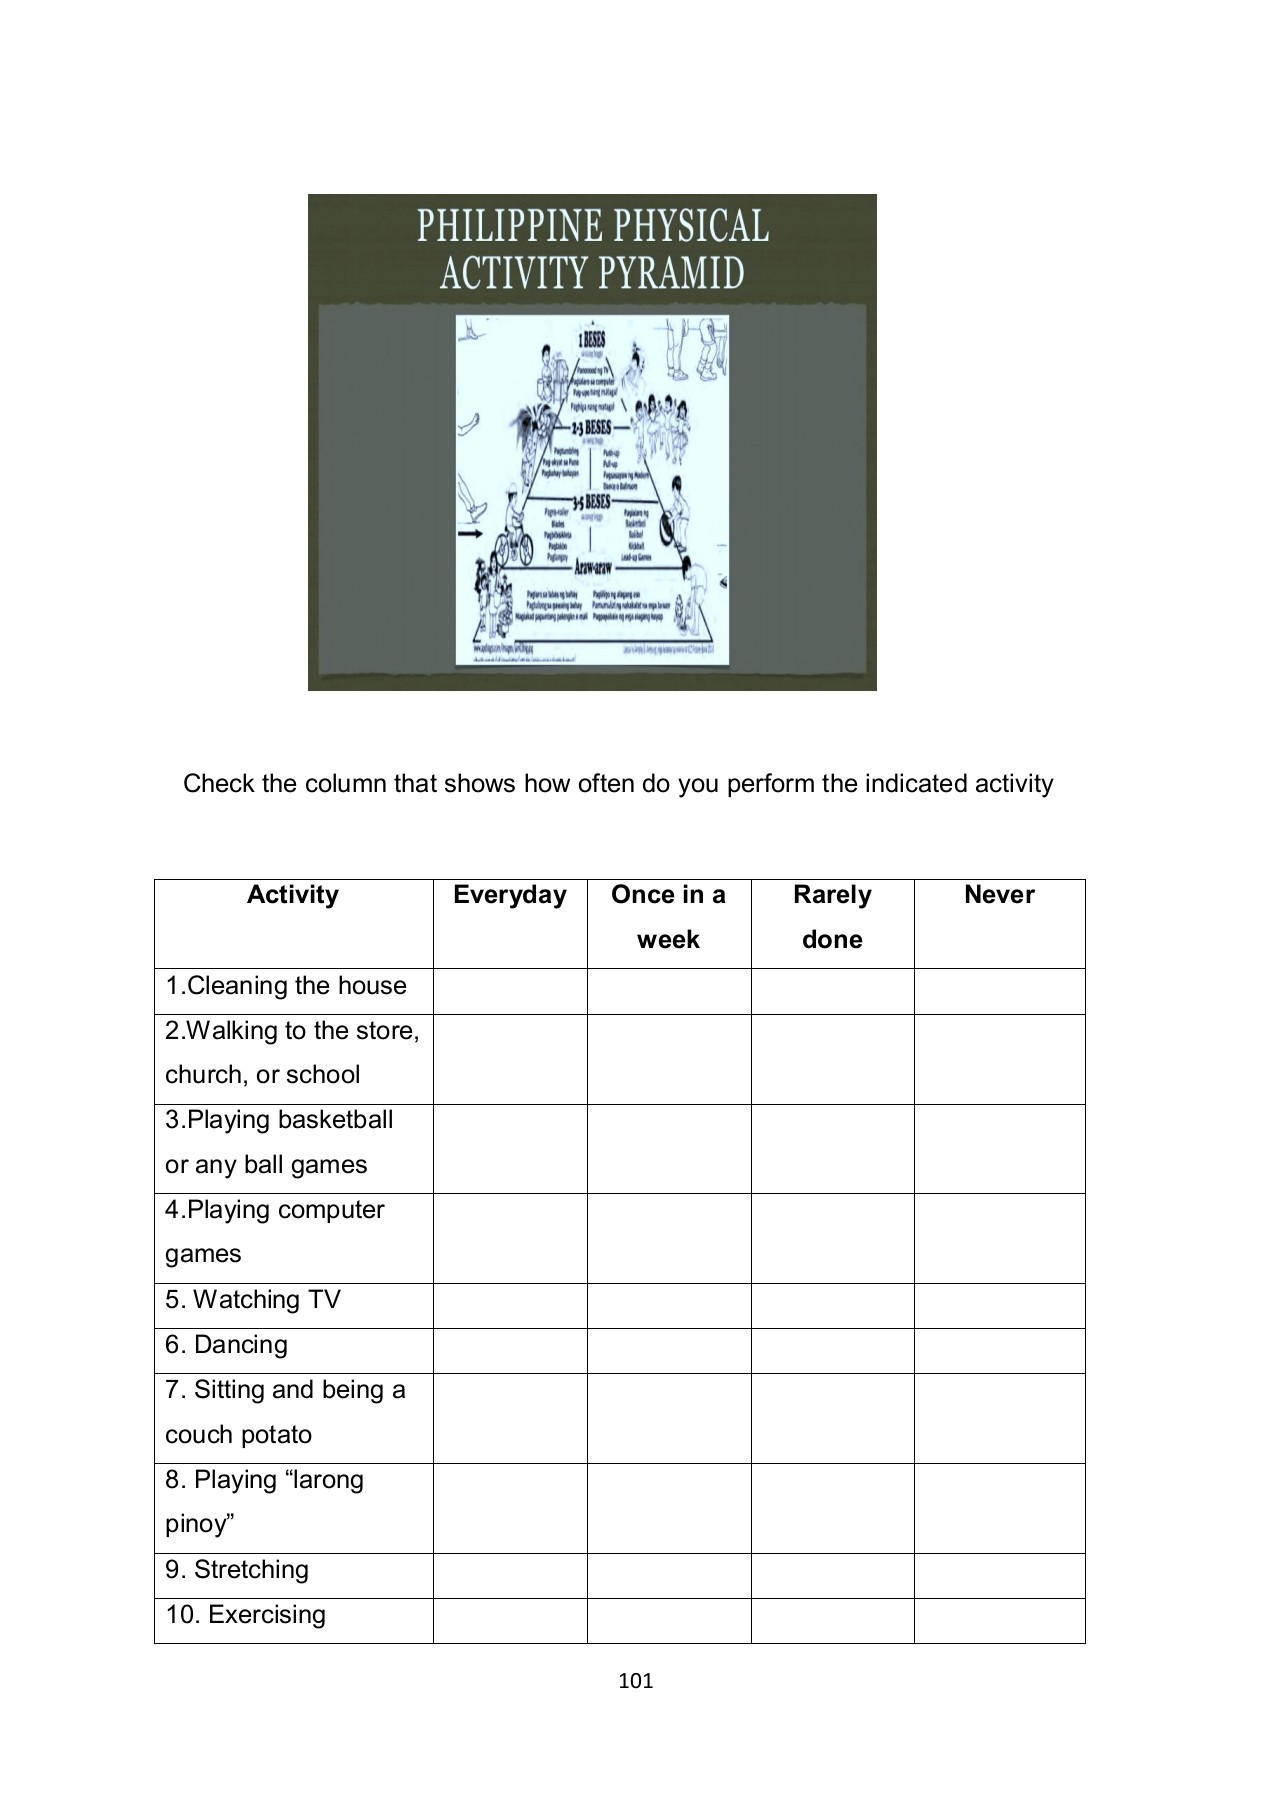 medium resolution of MAPEH-6-WORKSHEETS Pages 101 - 147 - Flip PDF Download   FlipHTML5